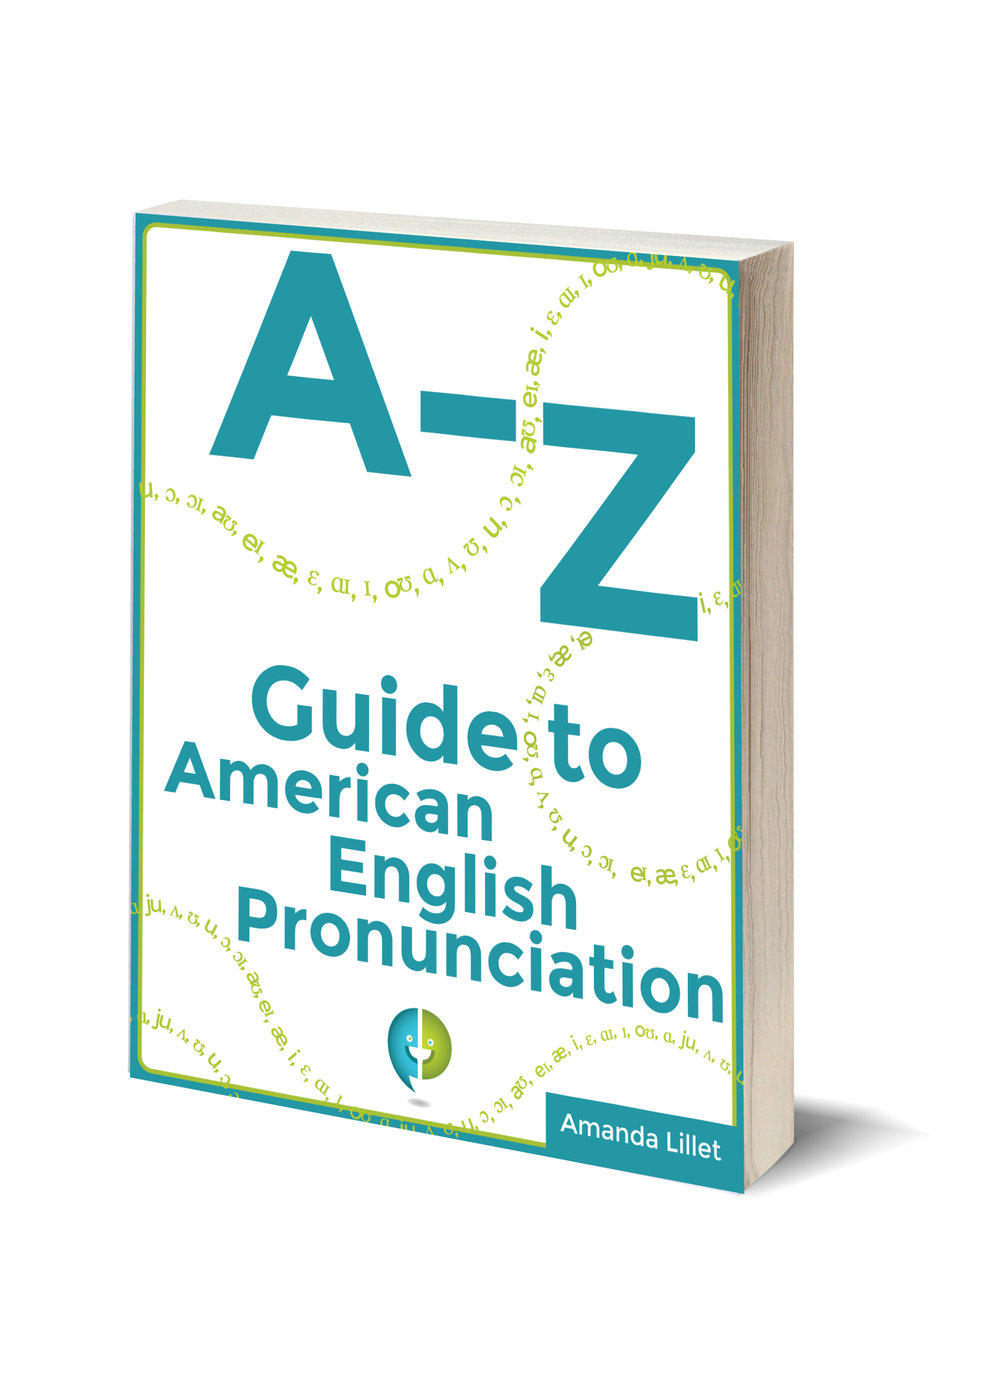 Amanda Lillet's English Pronunciation Guide